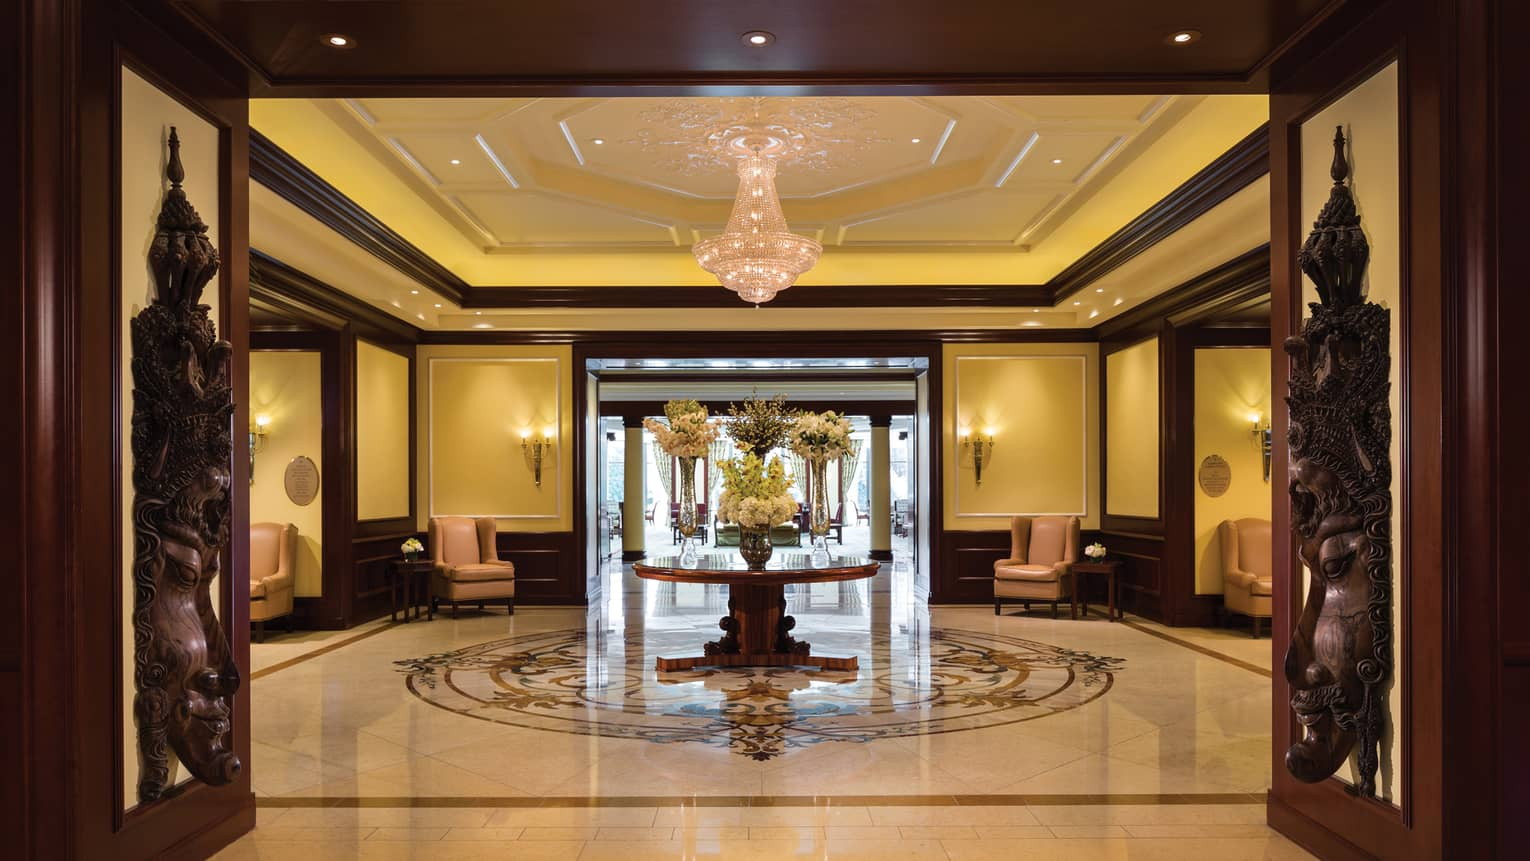 Marble lobby with large flower display, tall open doors with eastern-style wood carvings of faces